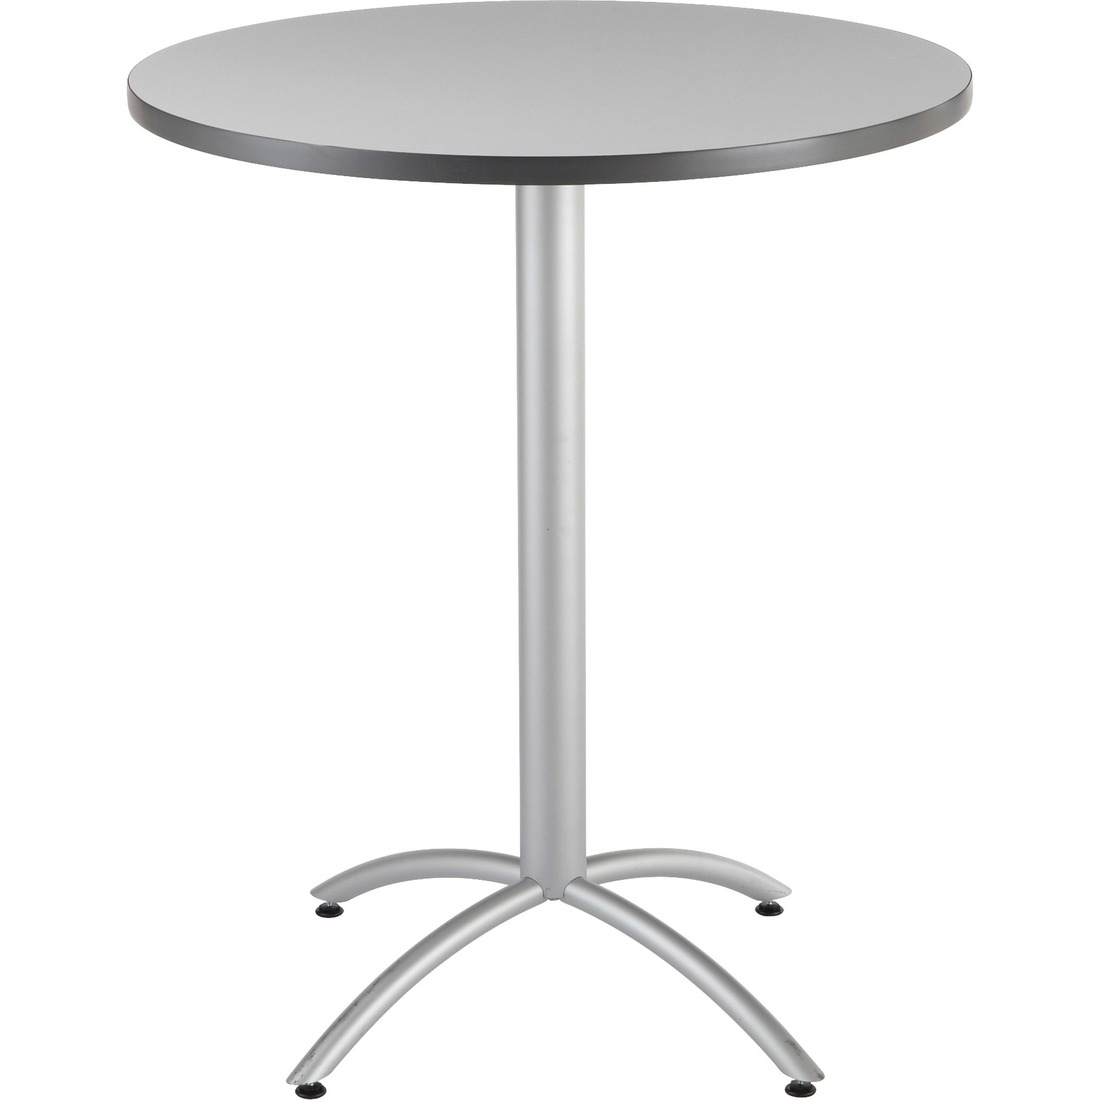 "Iceberg 65667 - CafeWorks Bistro Table, 36"" Round, Gray"